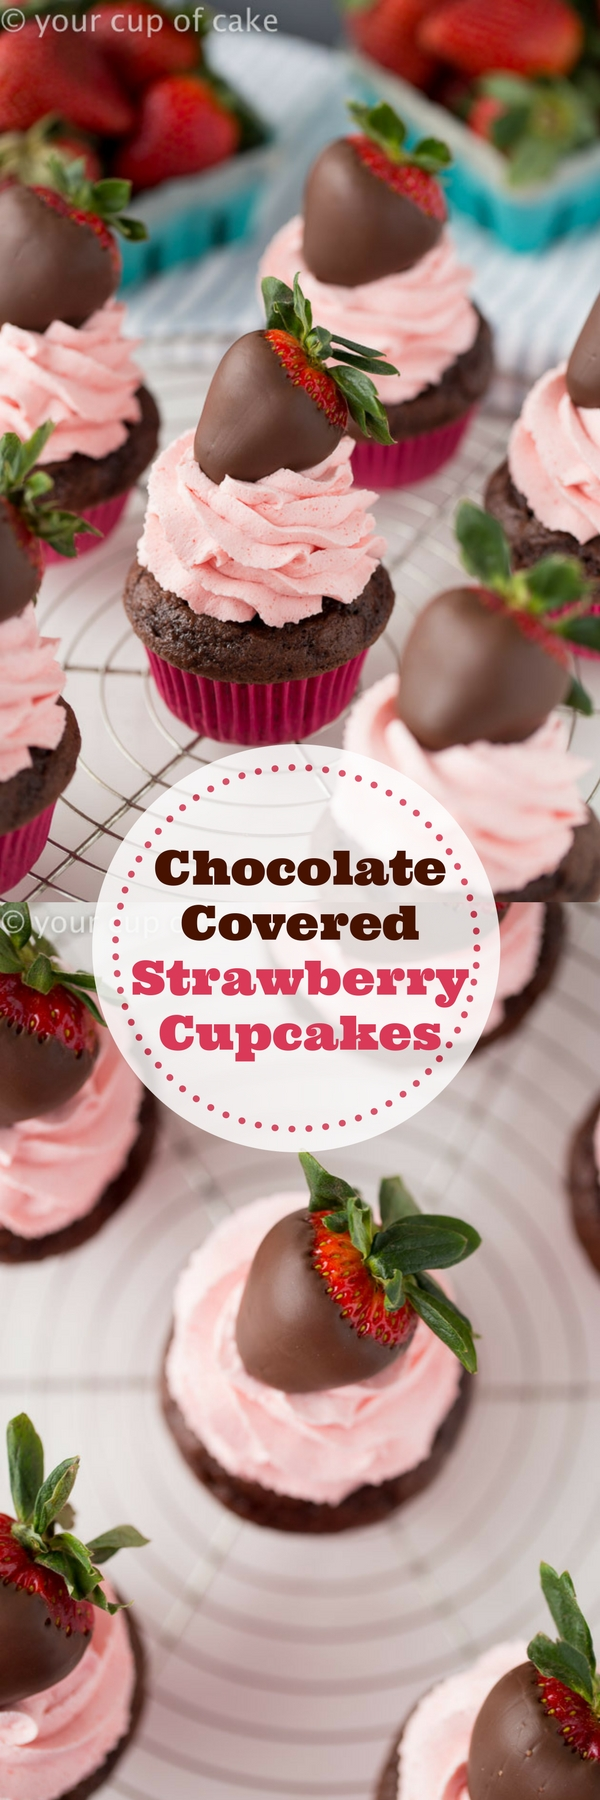 Chocolate Covered Strawberry Cupcakes with Strawberry Whipped Cream, LOVE this easy recipe!